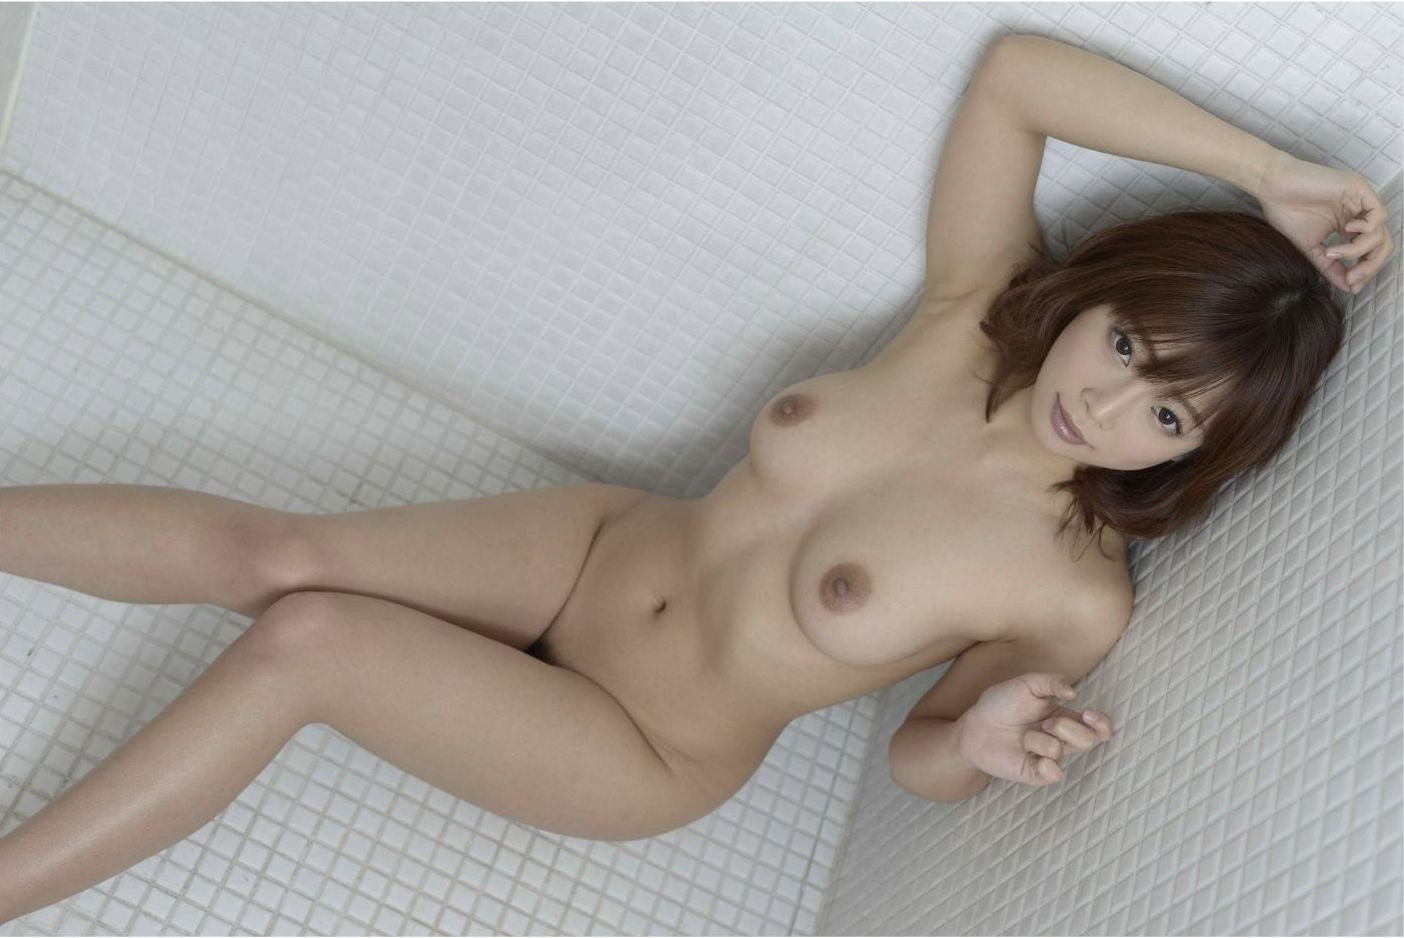 SOFT ON DEMAND GRAVURE COLLECTION 紗倉まな02 photo 139